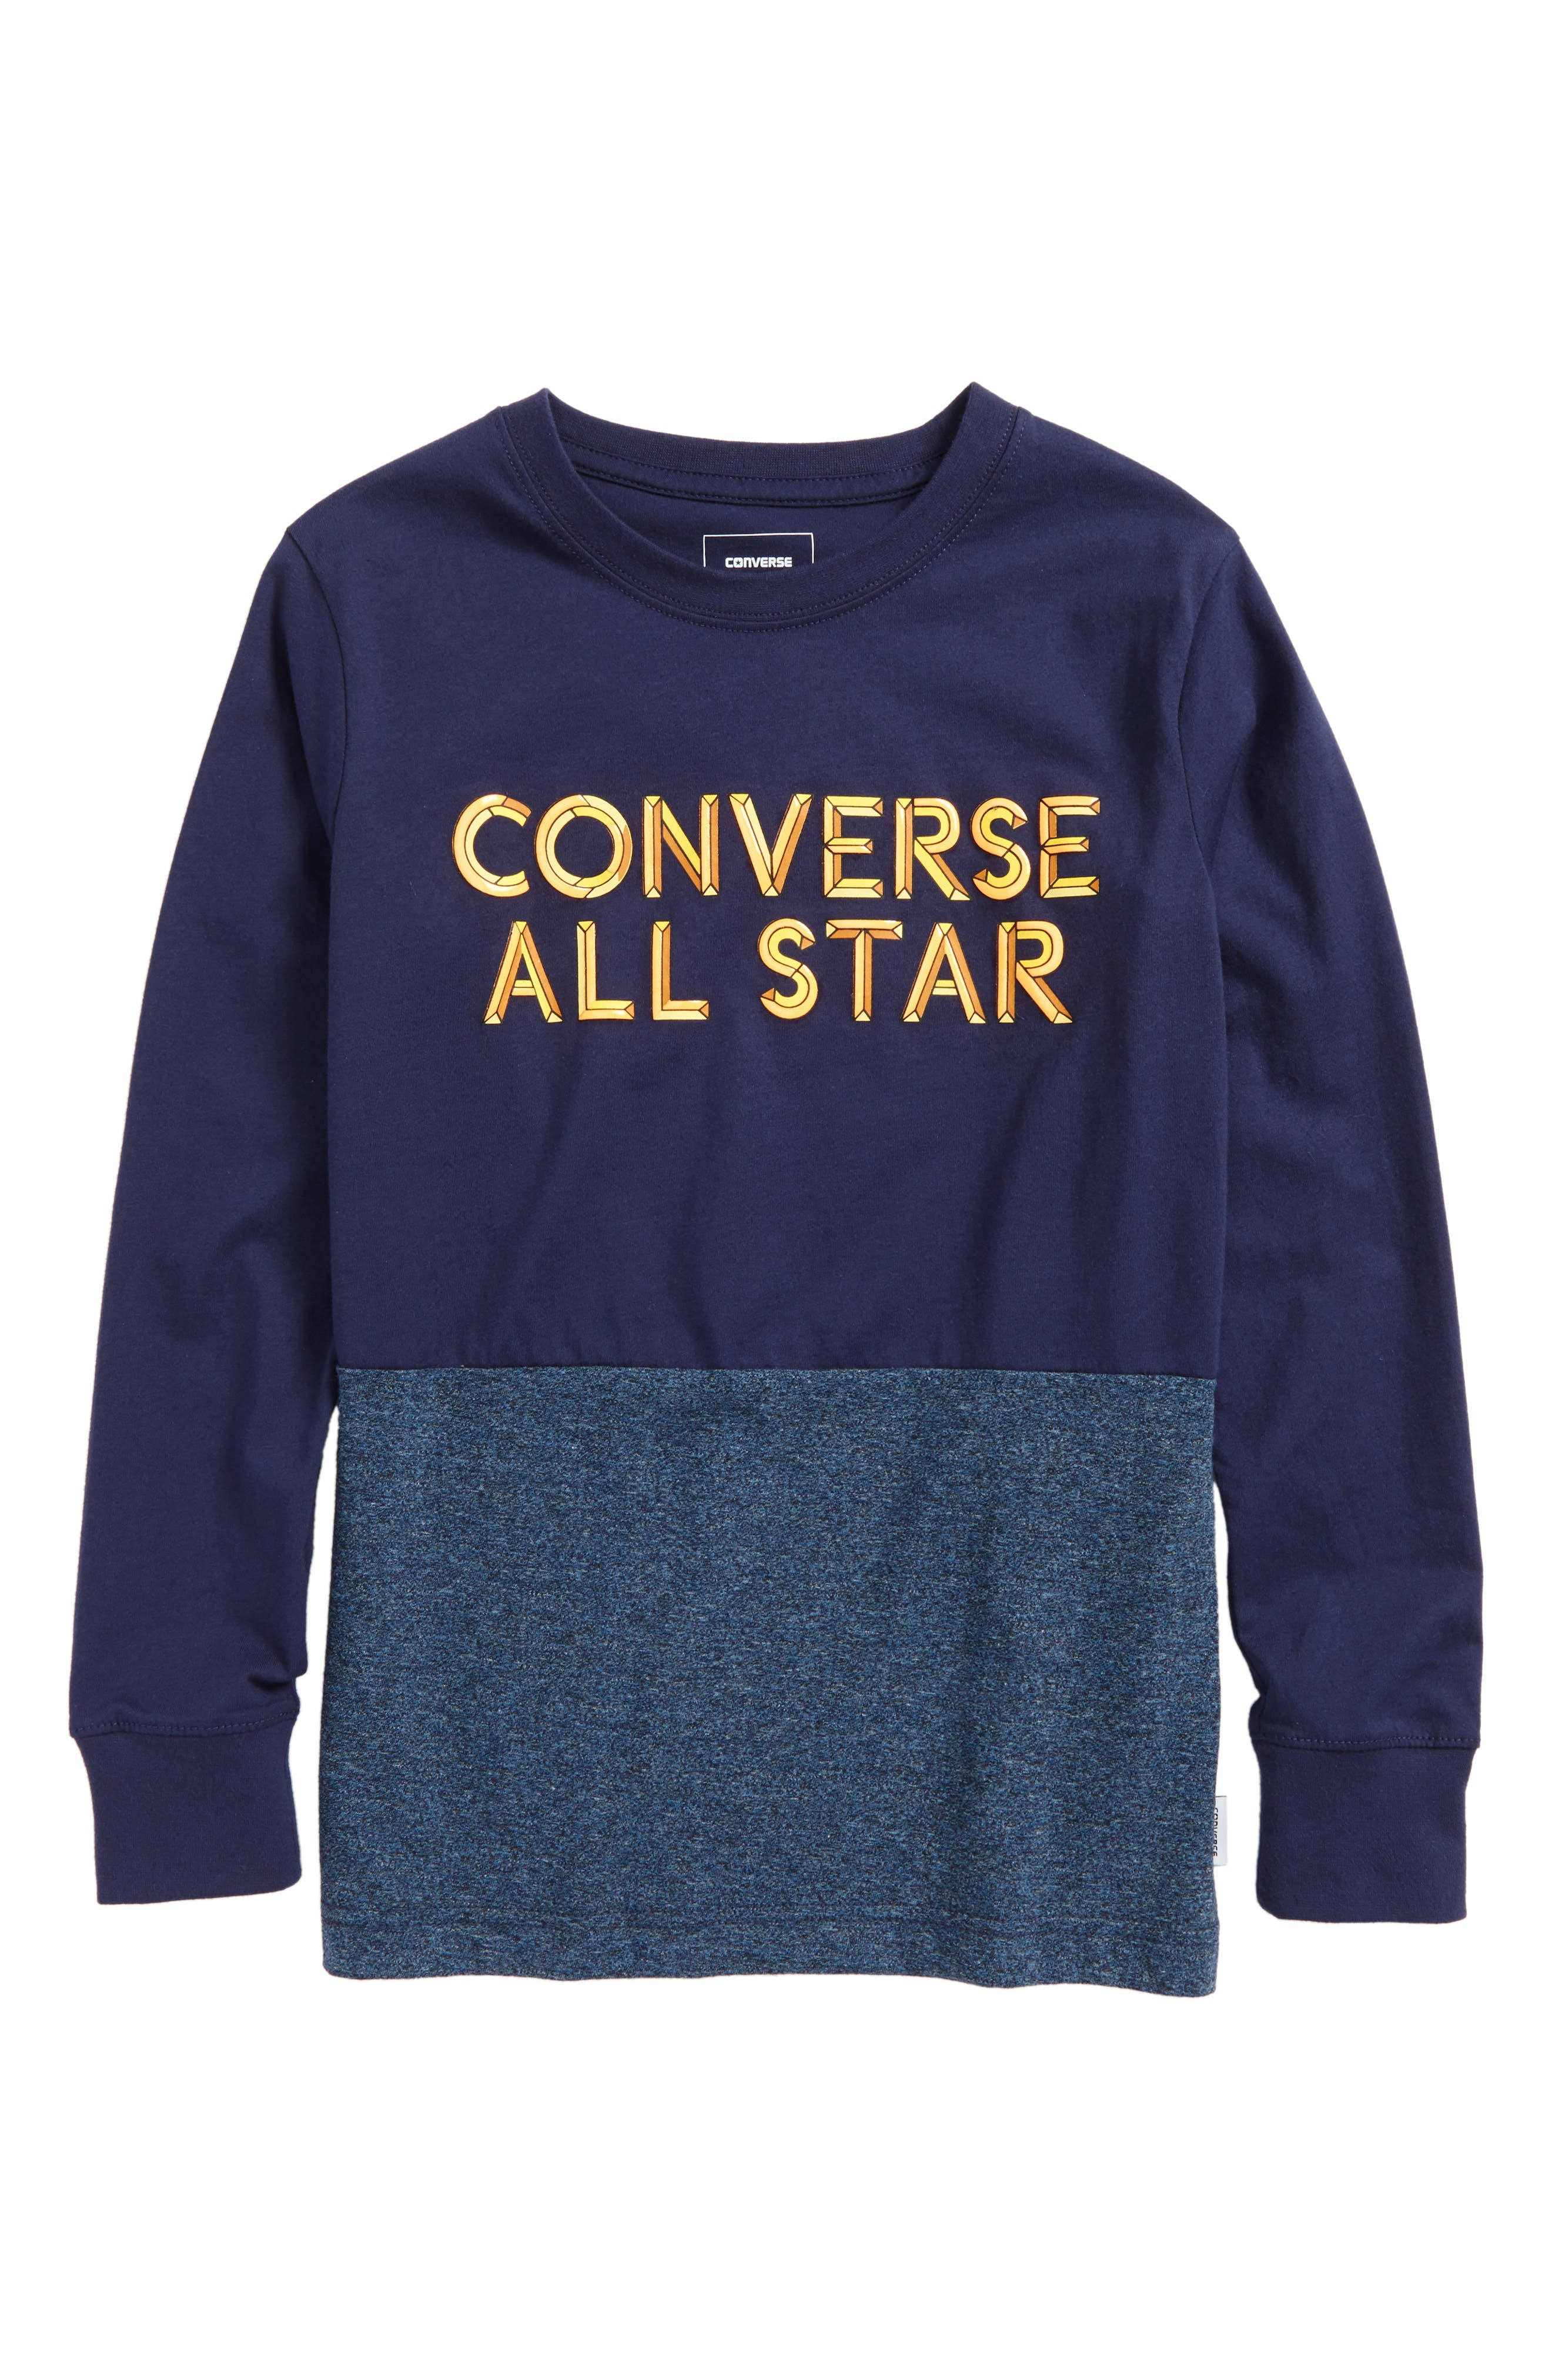 Alternate Image 1 Selected - Converse Static Heather Graphic T-Shirt (Big Boys)